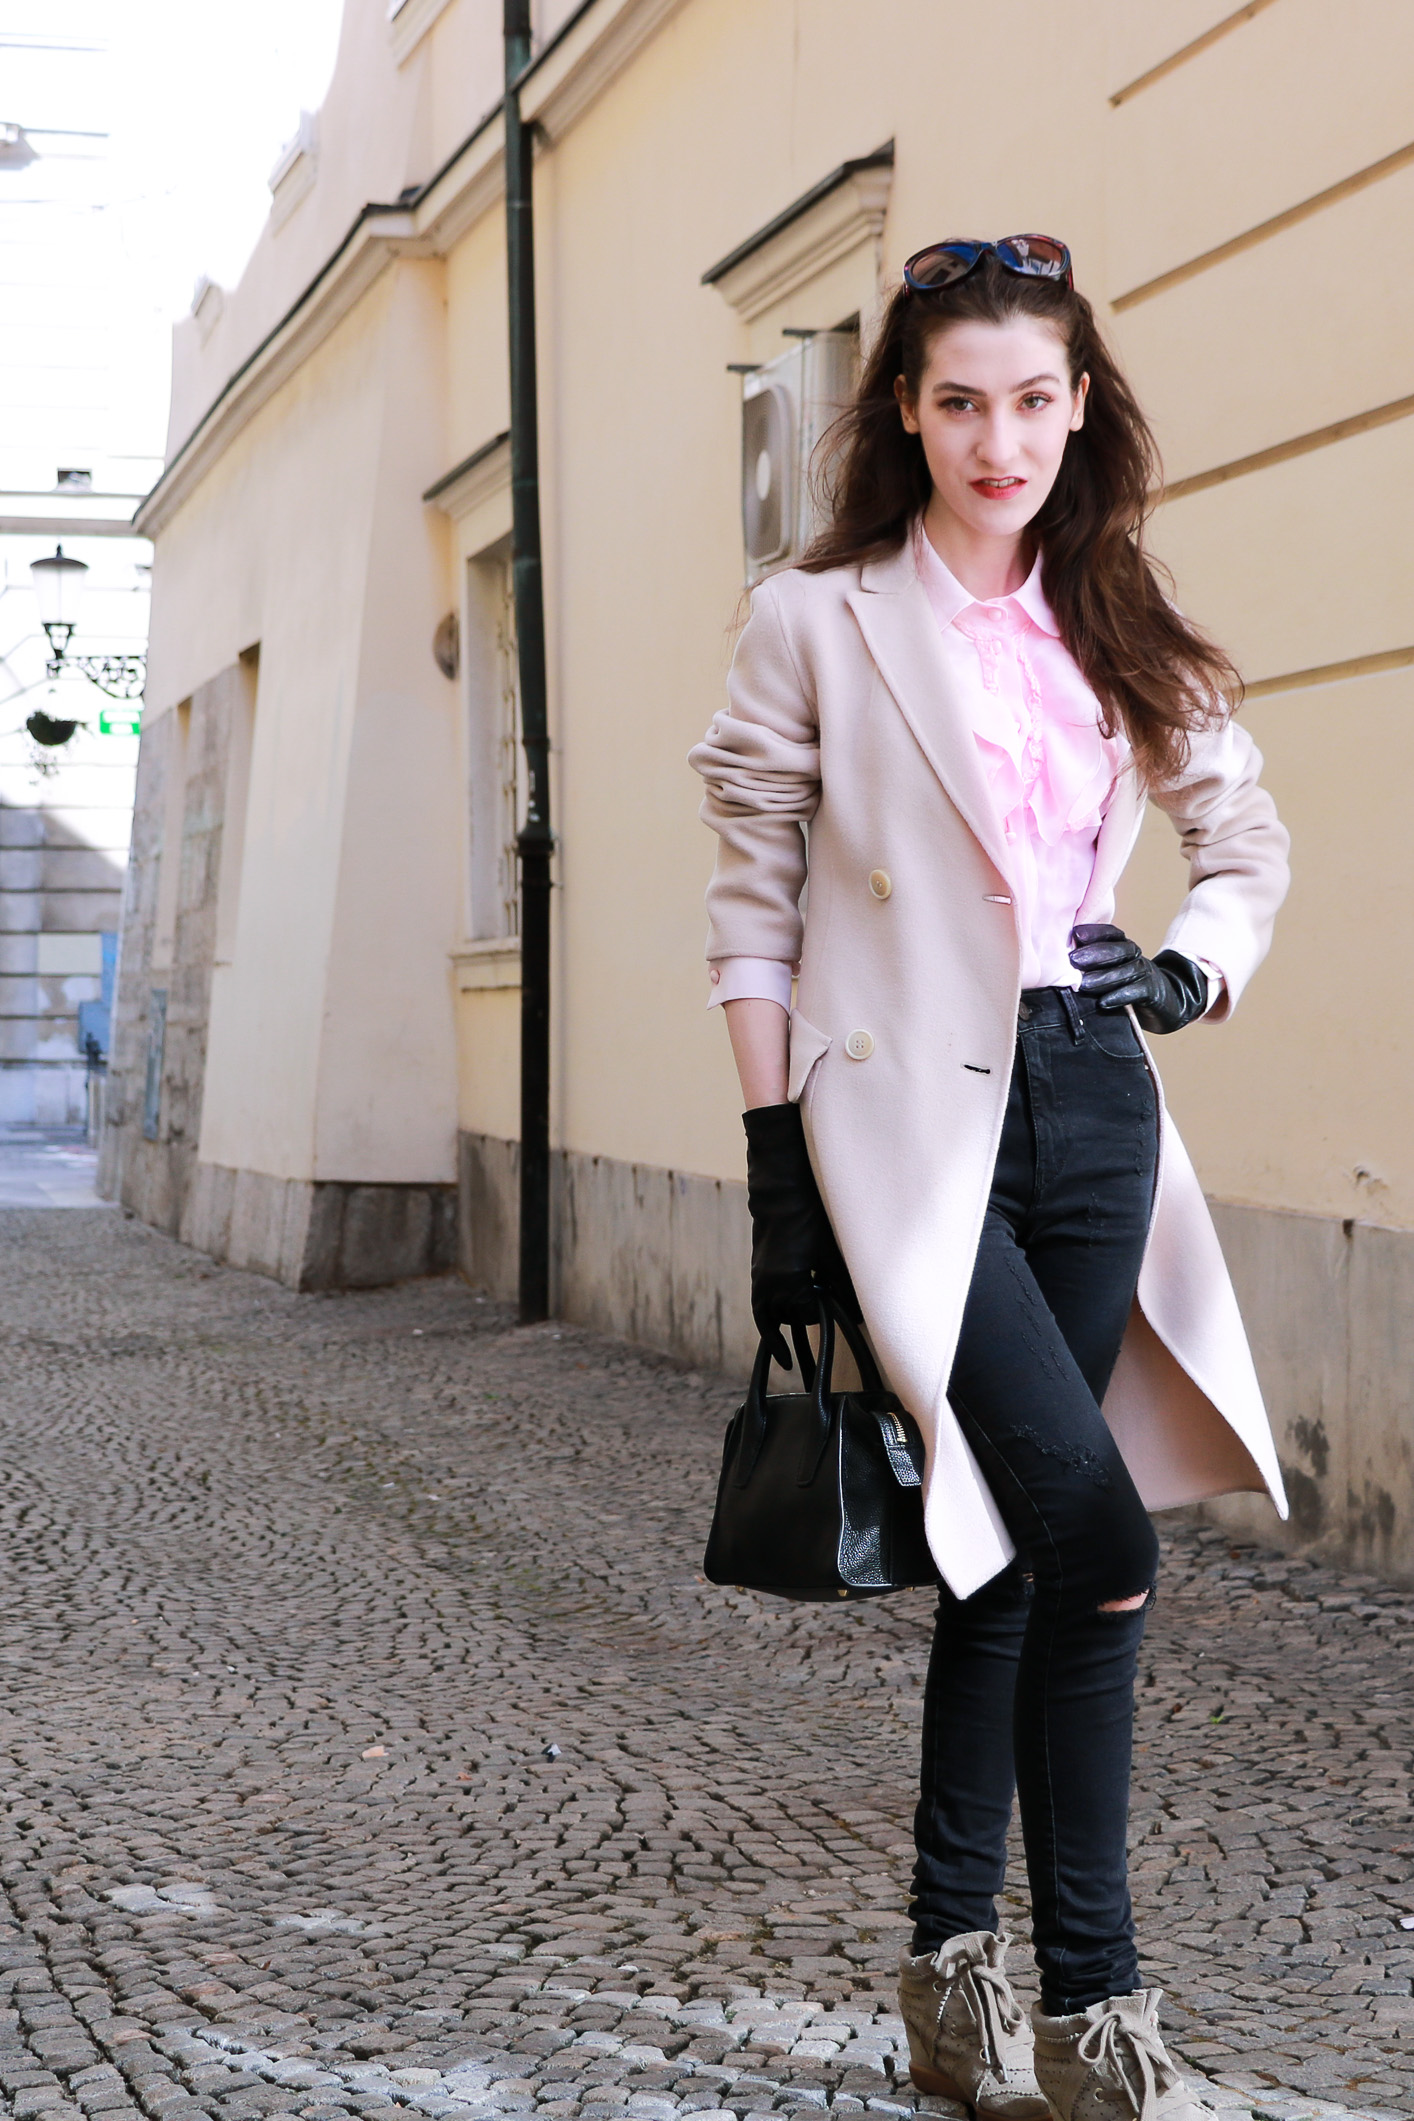 Fashion blogger Veronika Lipar of Brunette From Wall Street sharing her casual spring fashionable outfit and wedge sneakers